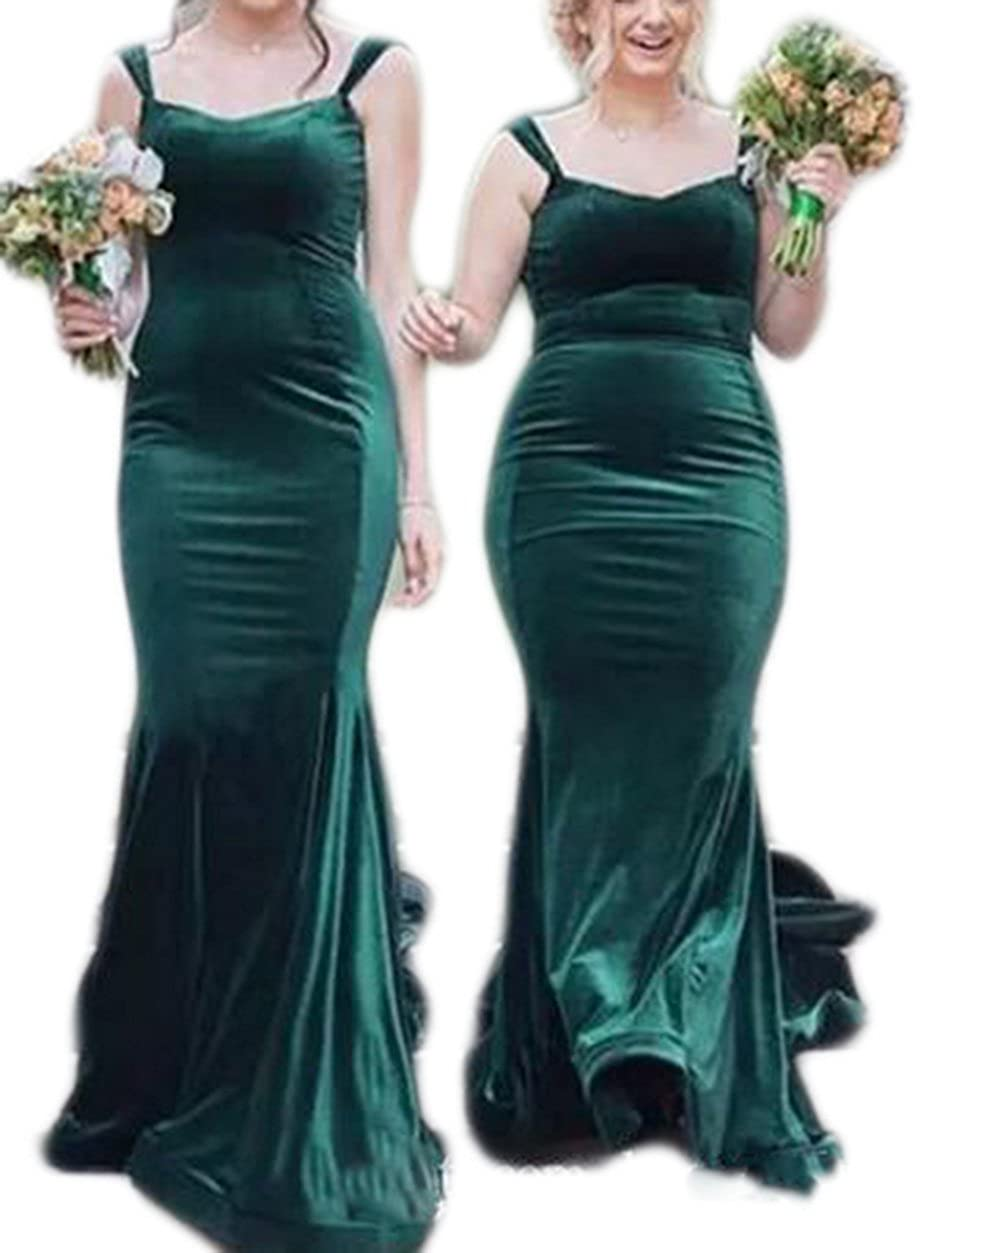 agreatvarietyofmodels crazy price shop for official Veilace Women's Hunter Green Velvet Mermaid Bridesmaid Dress Long Spaghetti  Straps Maid of Honor Gowns